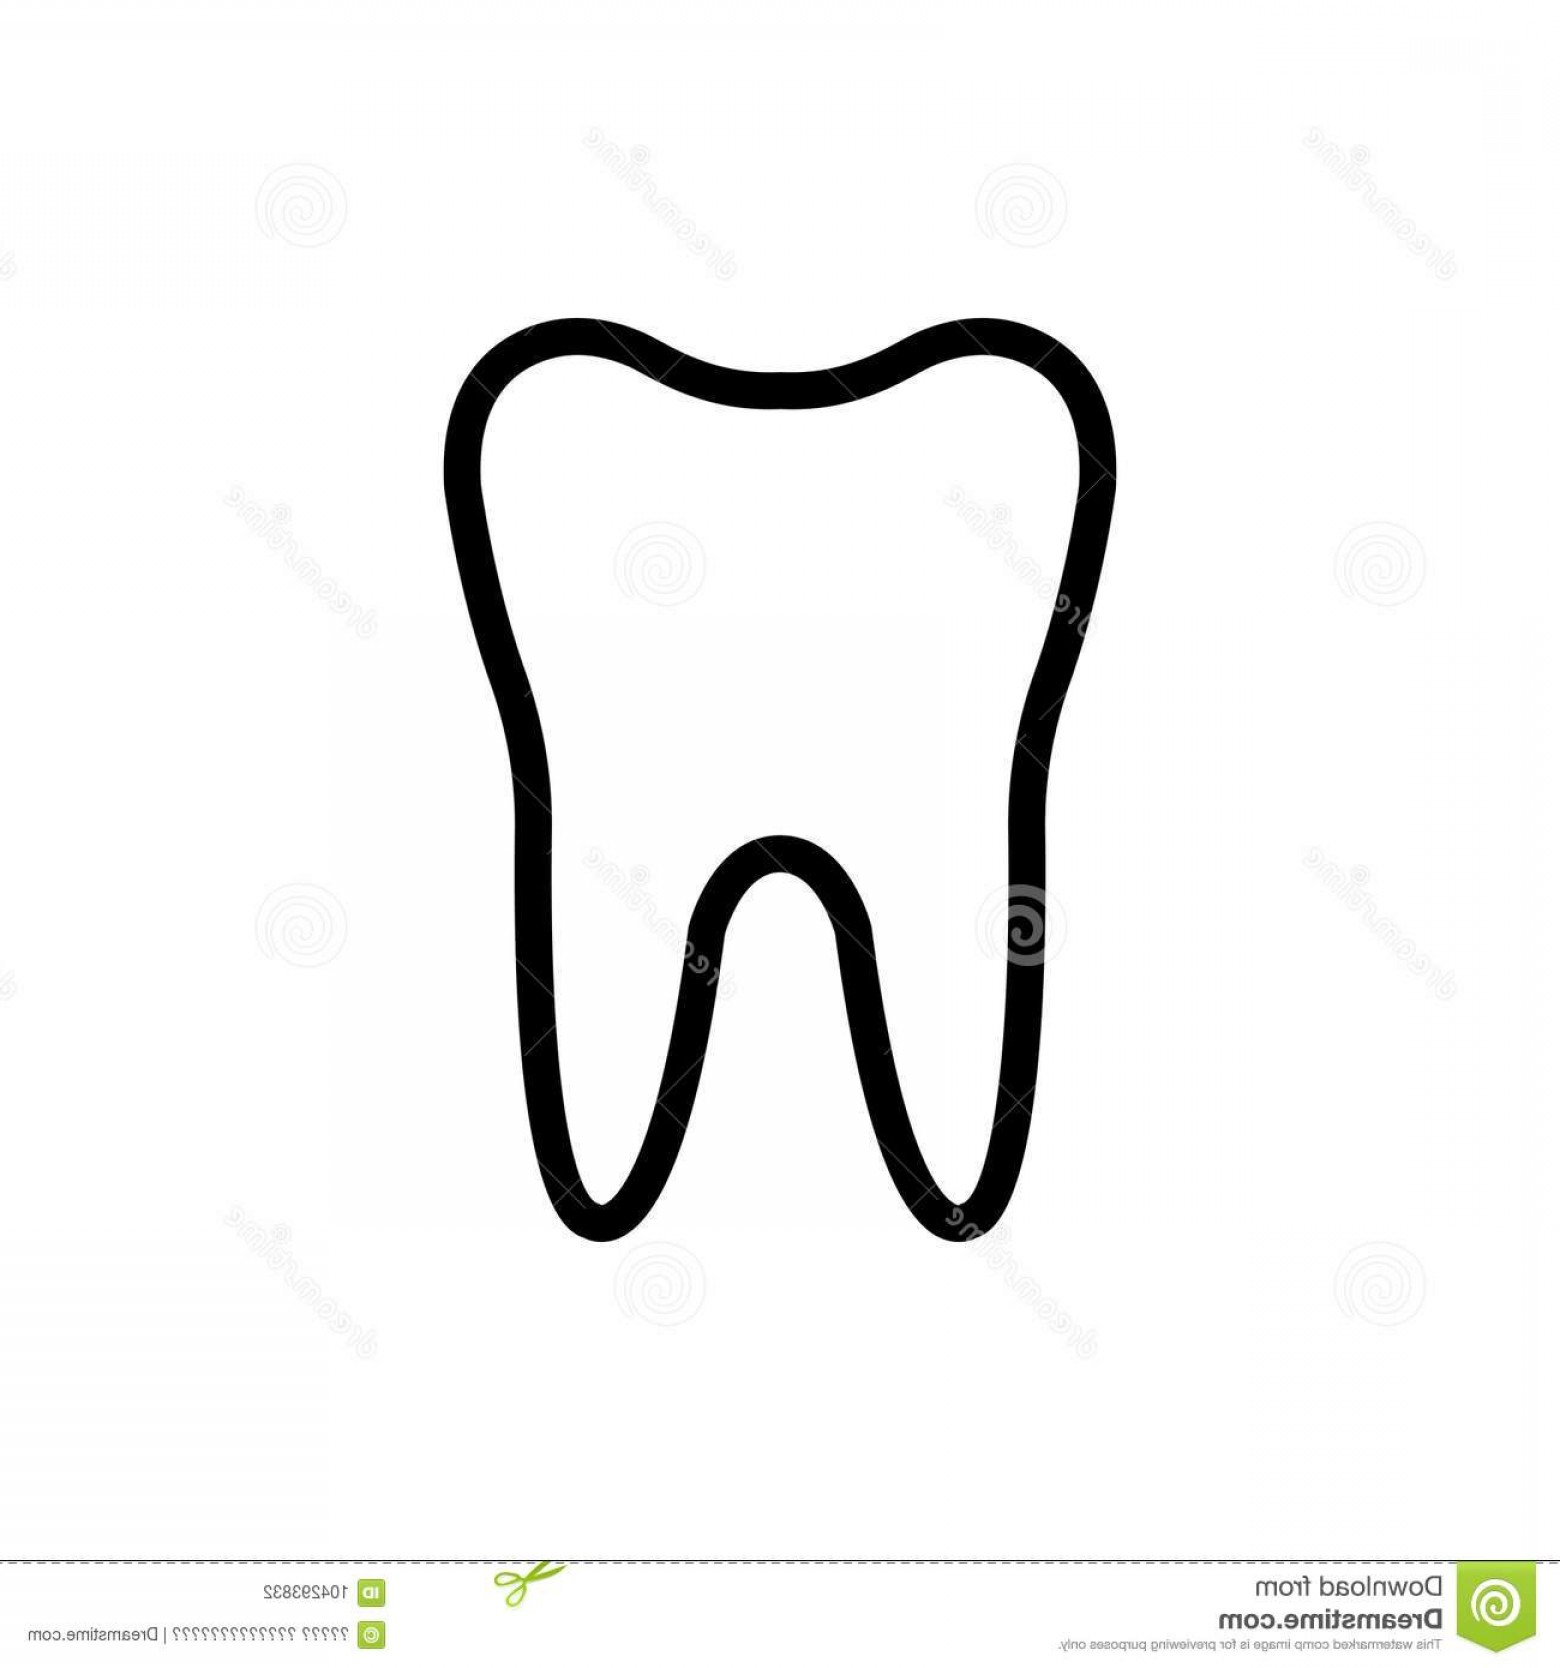 Tooth Outline Vector: Teeth Flat Icon Tooth Line High Quality Black Outline Logo Web Site Design Mobile Apps Vector Illustration White Image